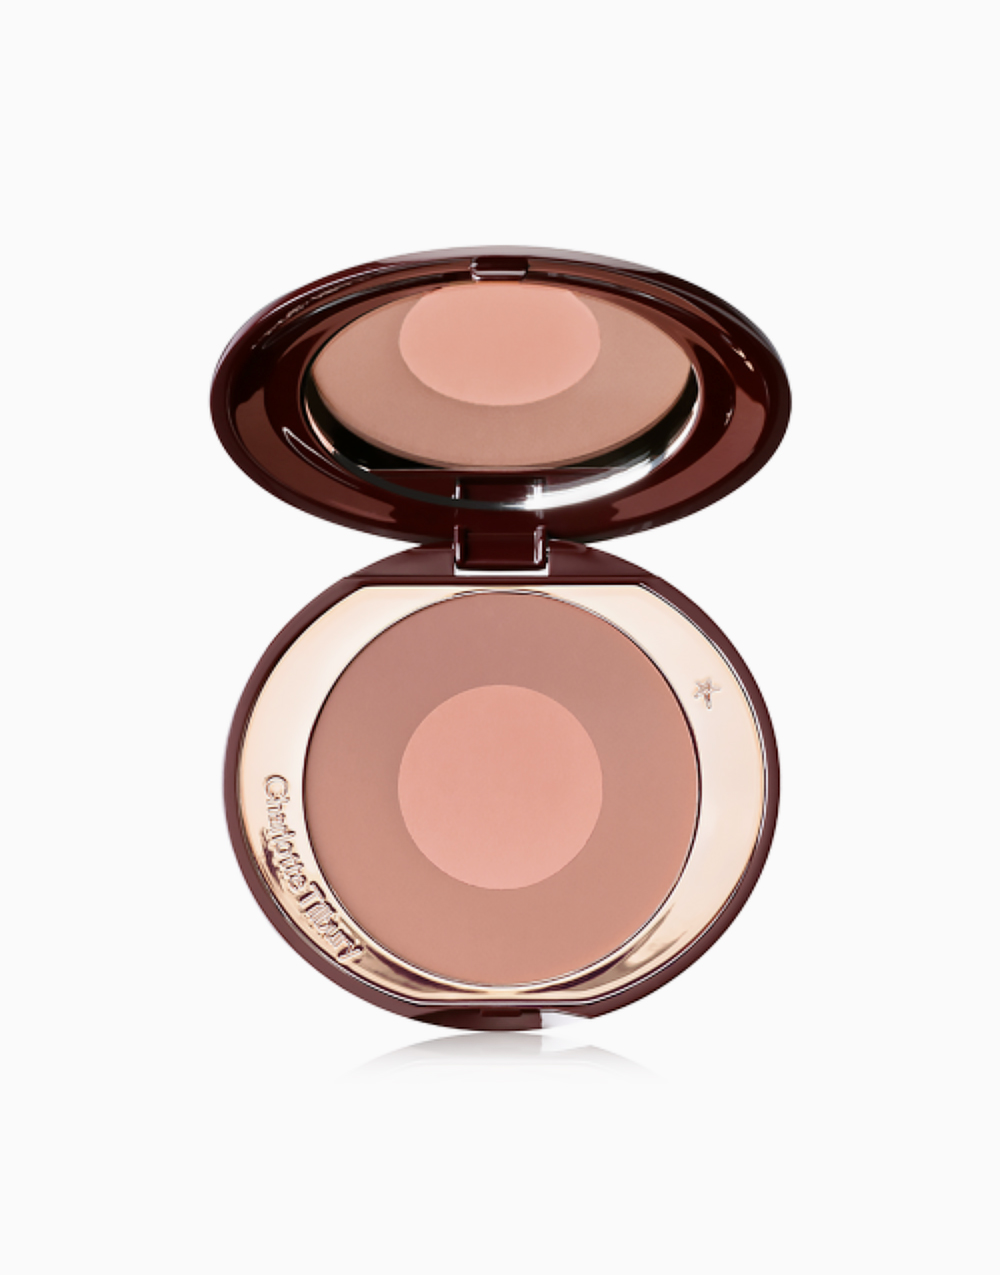 Cheek To Chic Blush by Charlotte Tilbury | The Climax